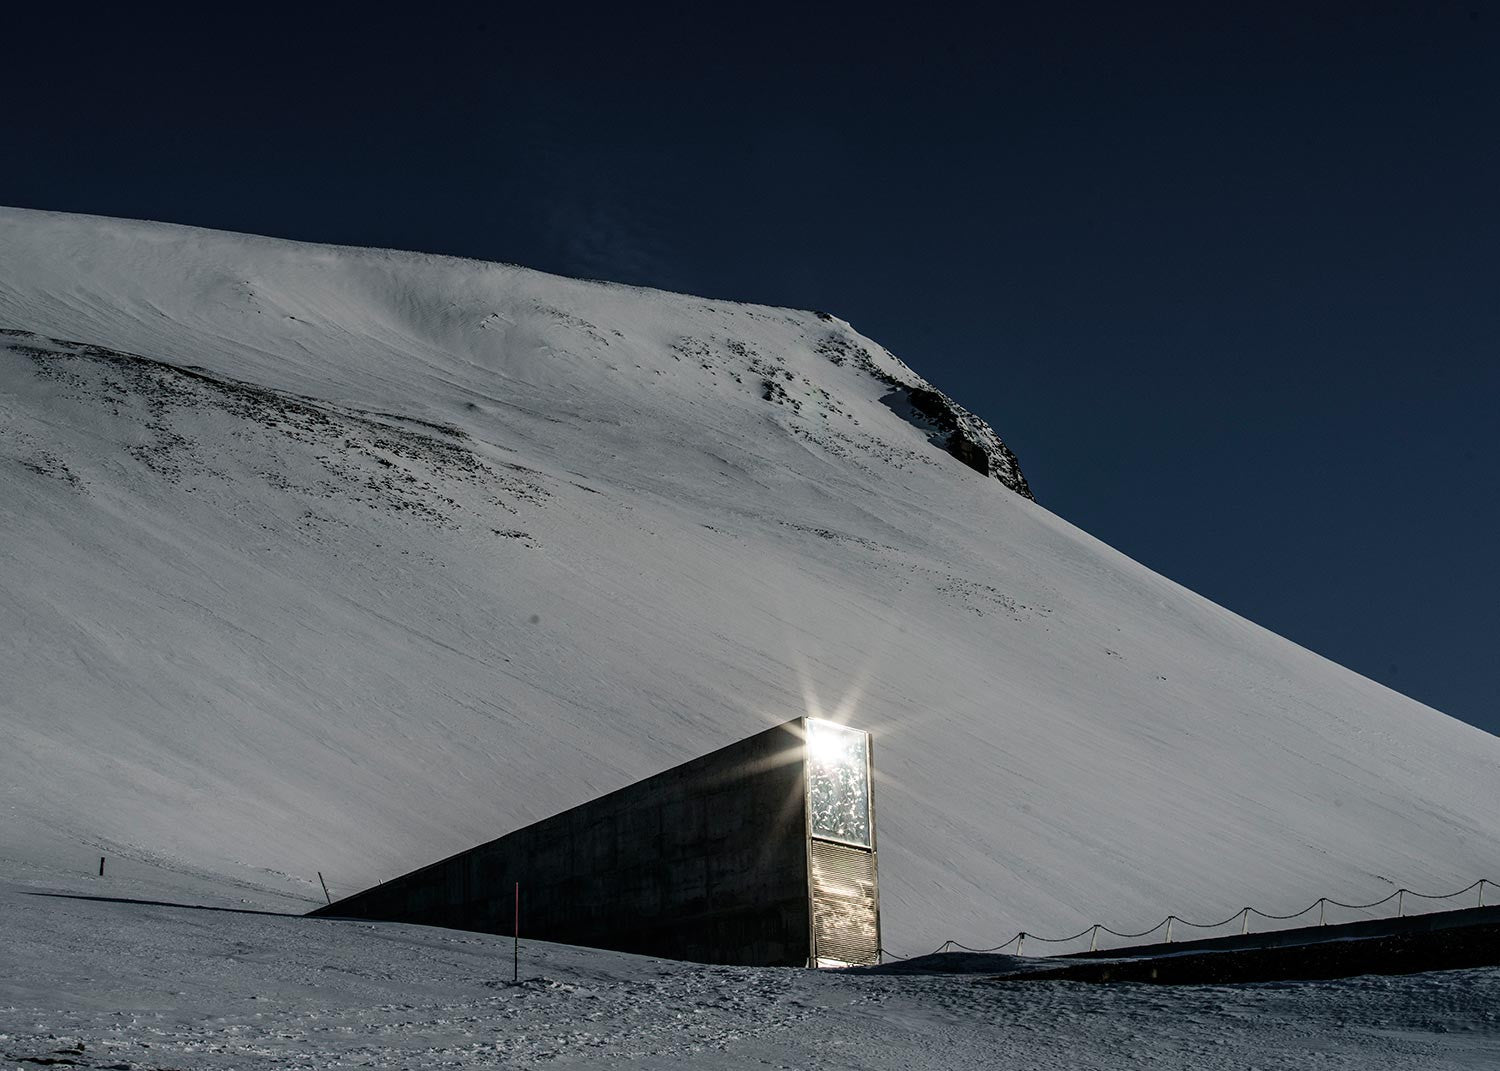 The Global Seed Vault. Svalbard, Norway, 2016.